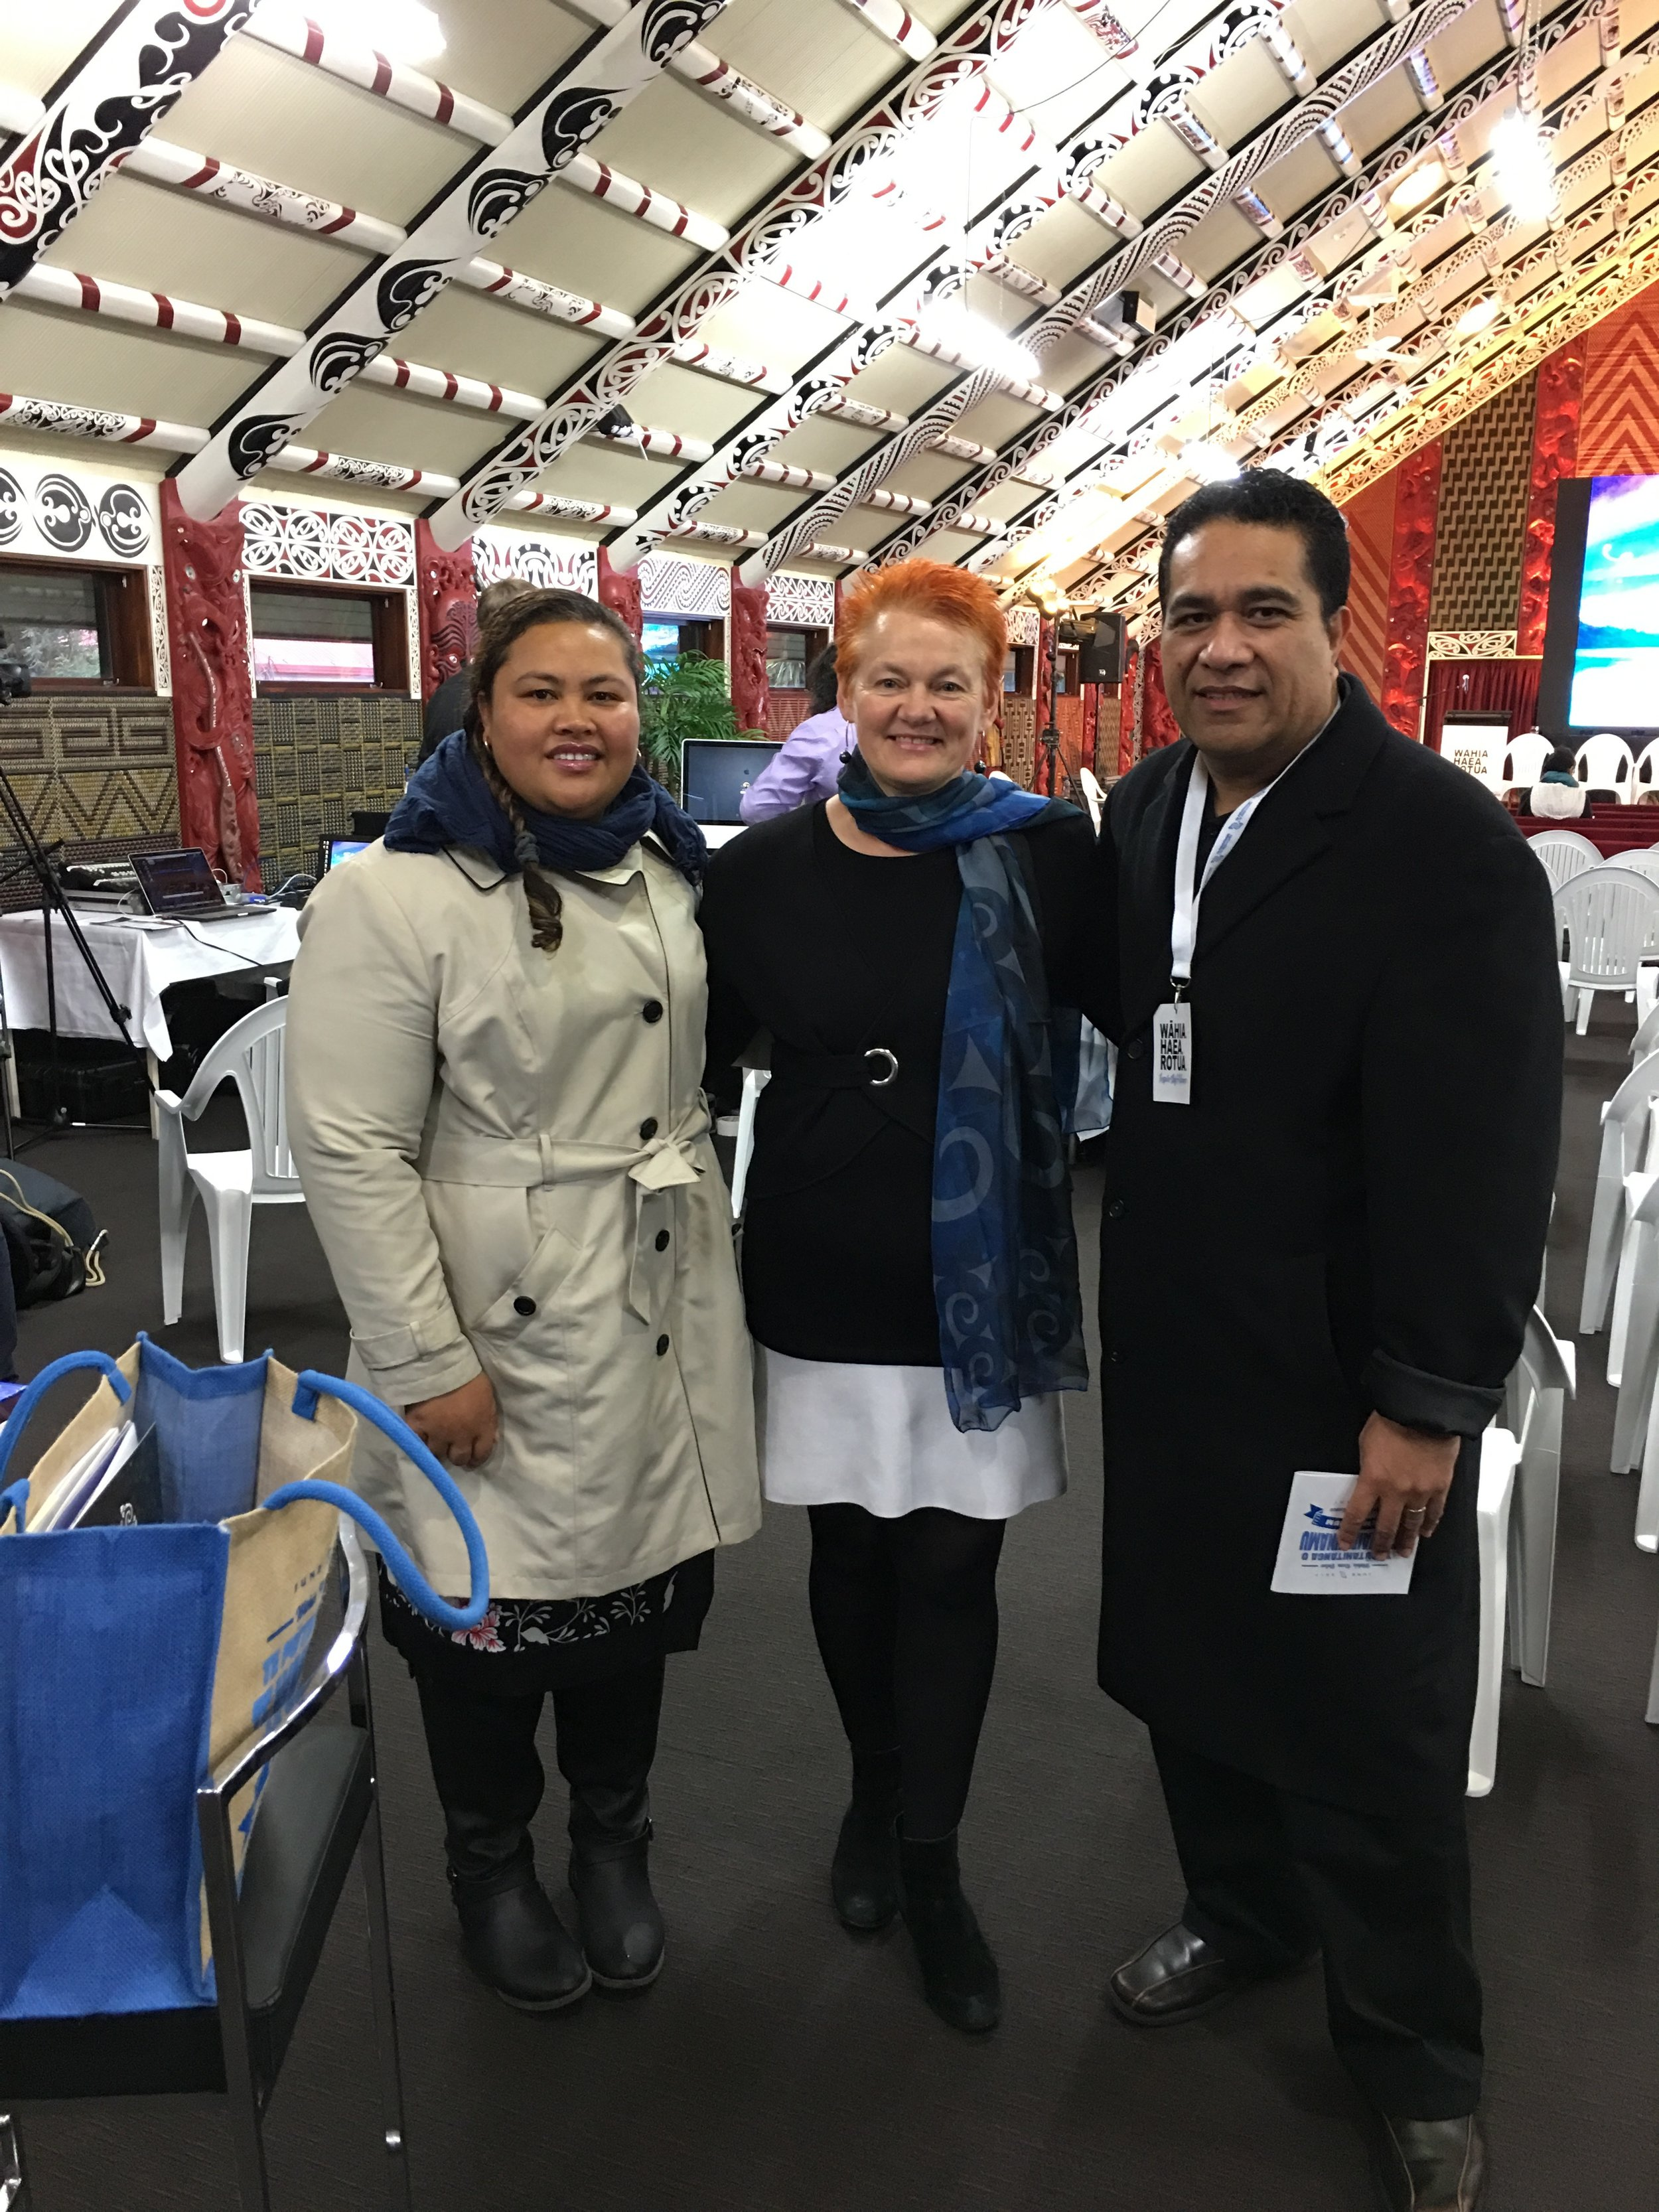 Sister Commissioning Agency Pasifika Futures was in the House